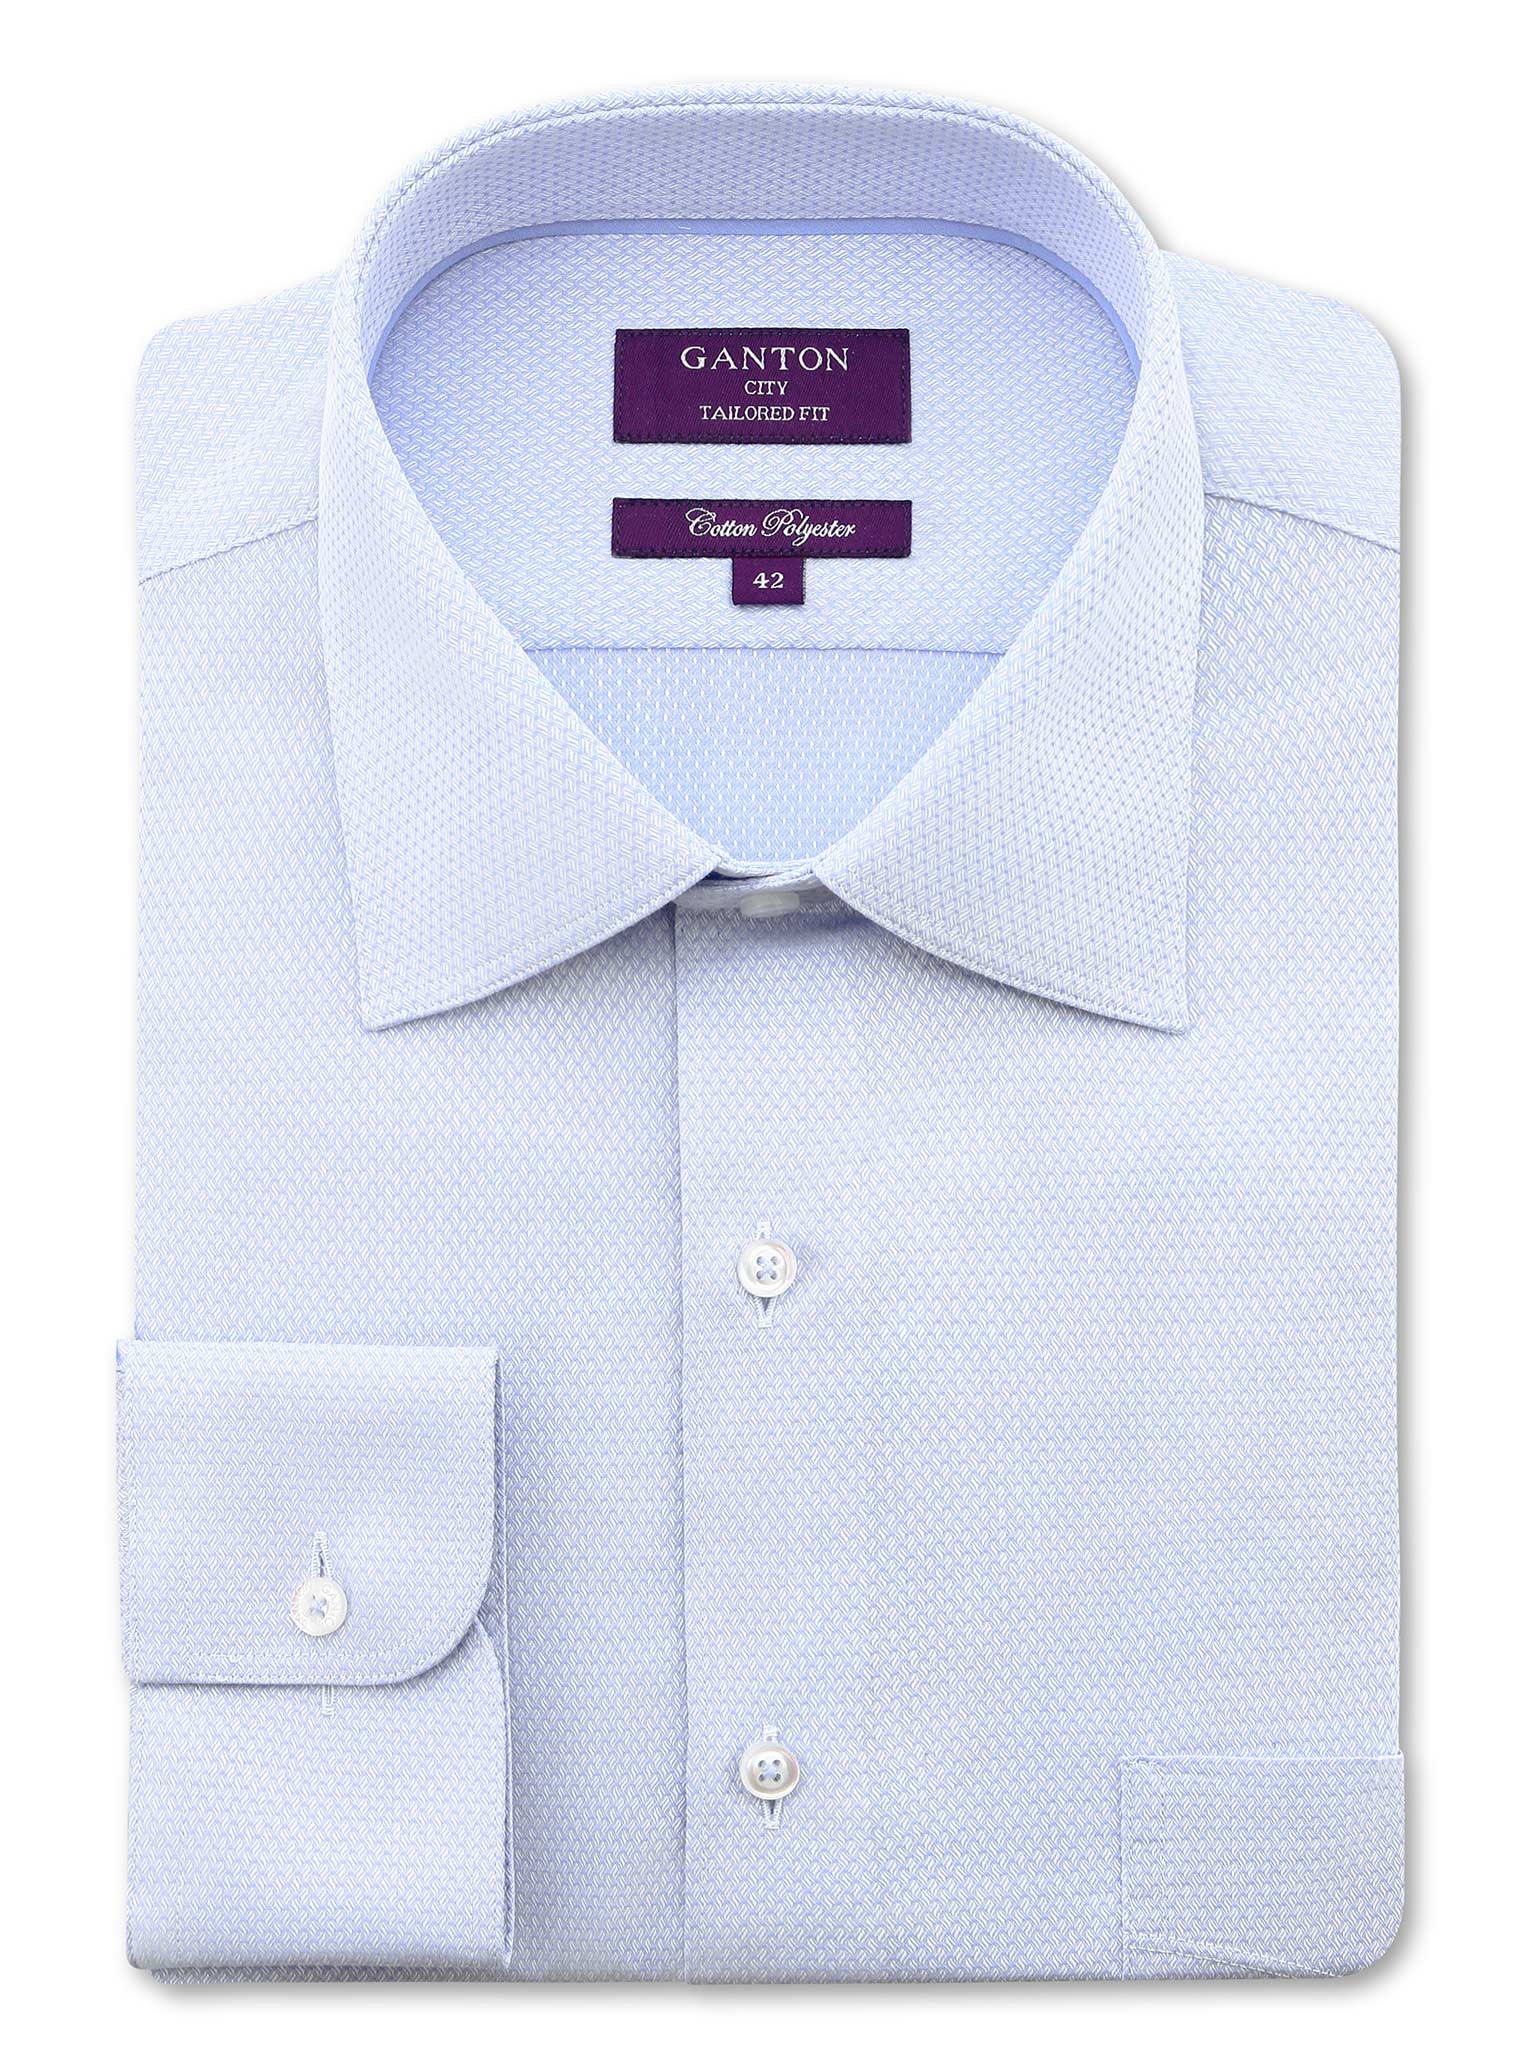 All Light Blue Textured Tailored Fit Cody Cotton Polyester Shirt